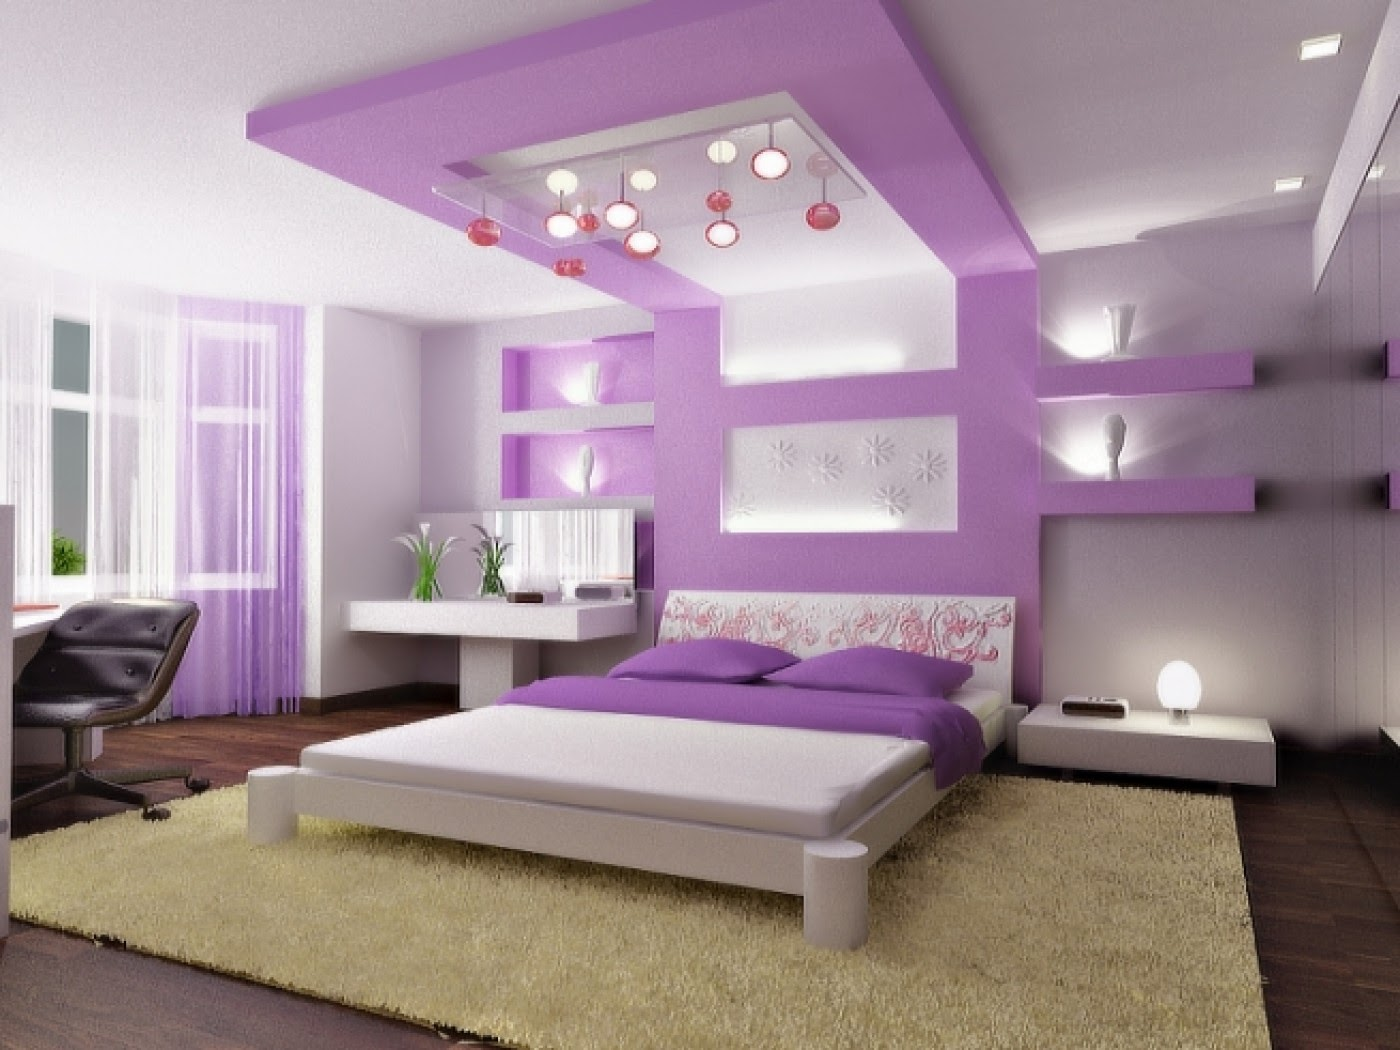 11 Bedroom Ceiling Design